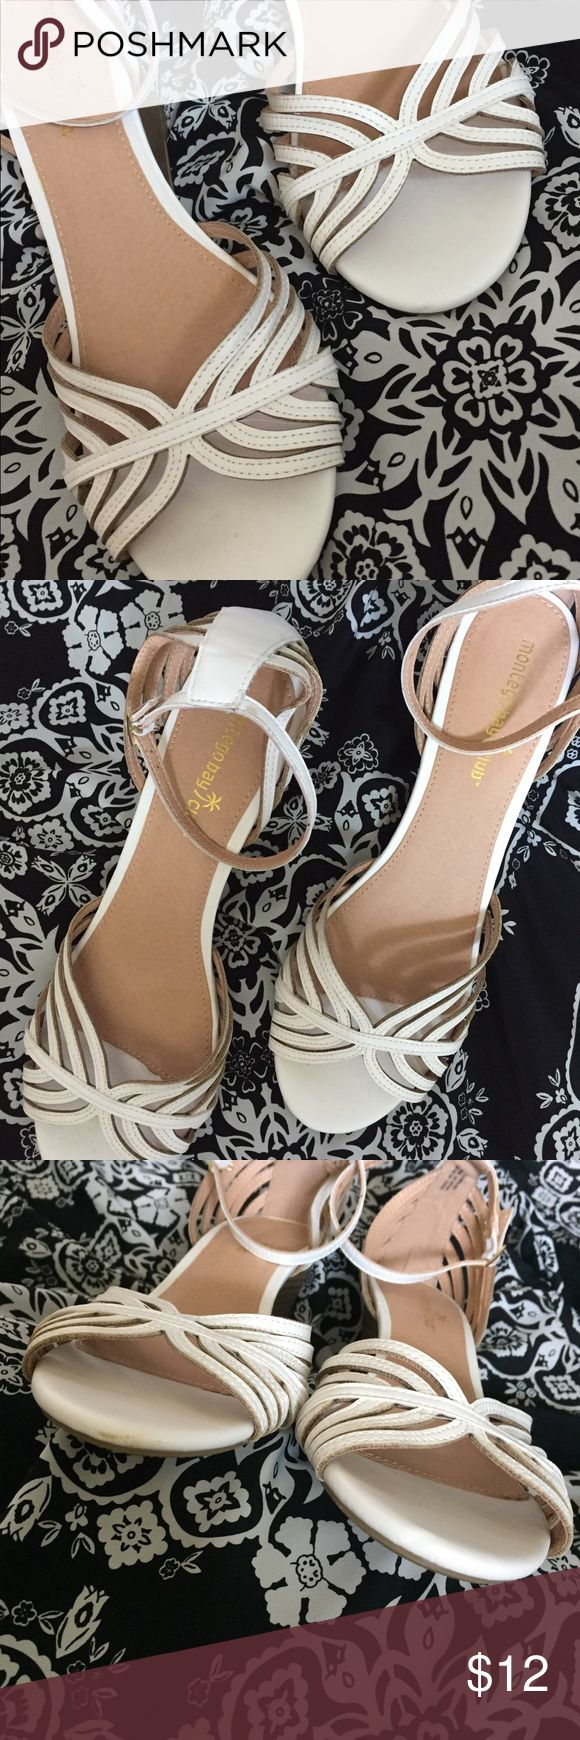 "White Wedge Sandals with Ankle Strap Barely worn (indoor wedding, if I remember correctly) size 11, white sandals by Montevideo Bay... which I think is Payless Shoes?  EUC heel is about 2 1/2"" Montego Bay Club Shoes Sandals"